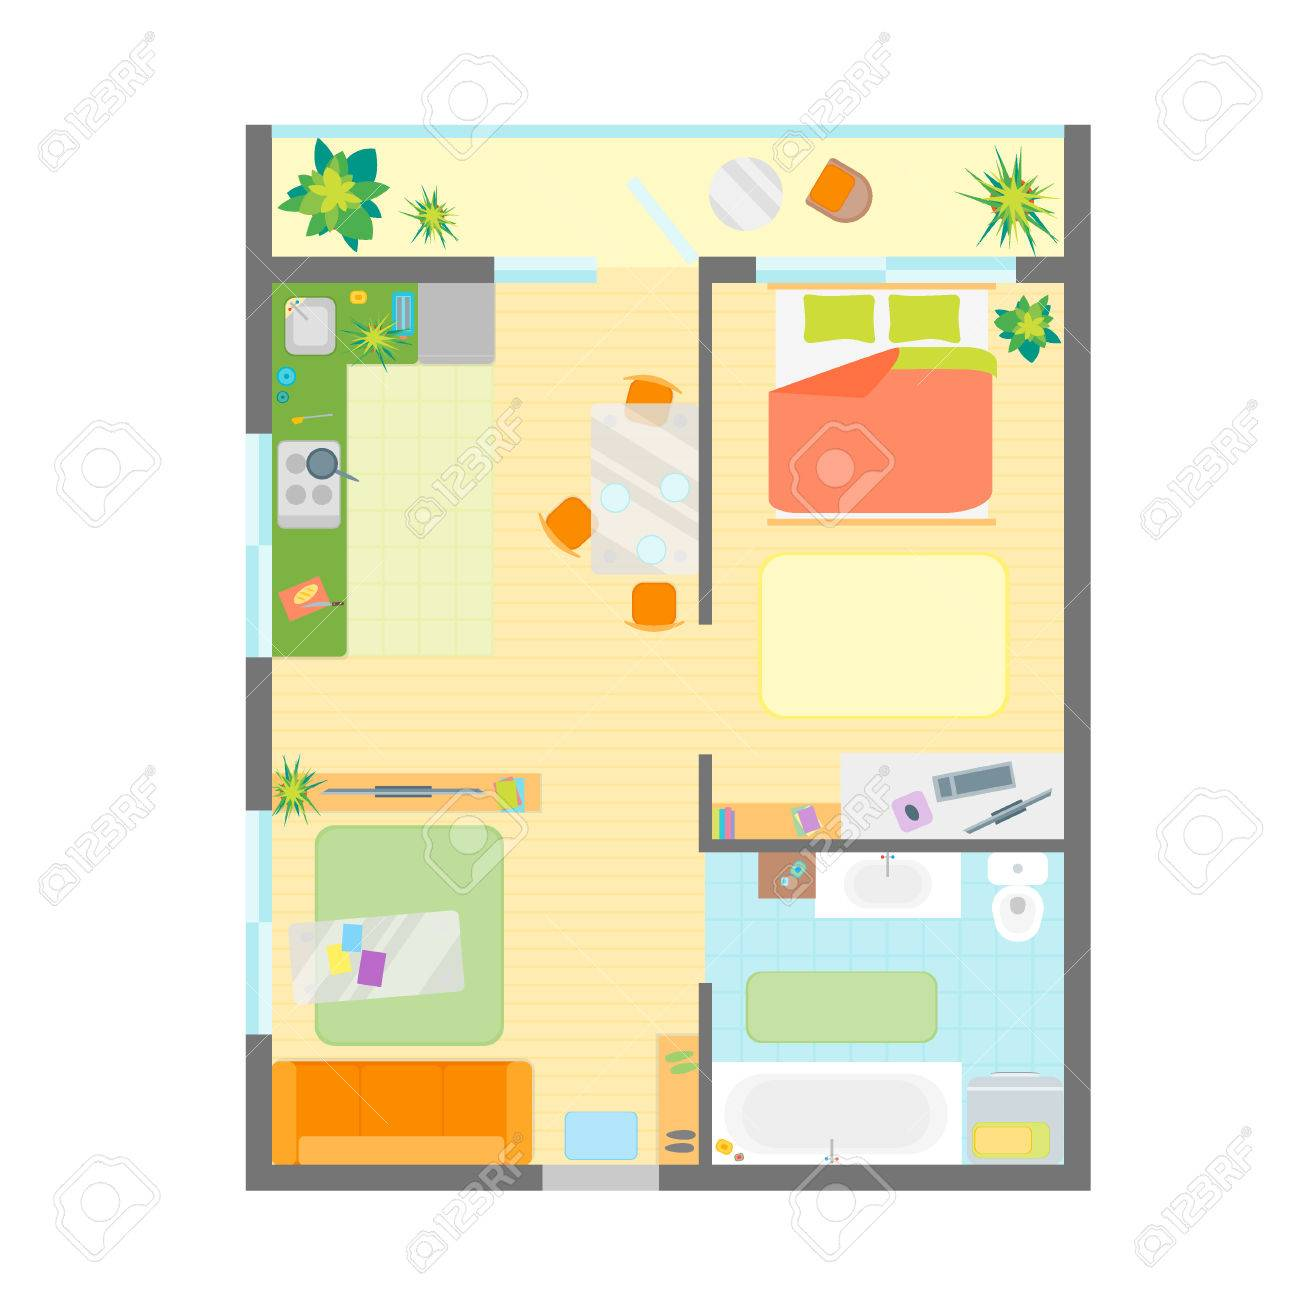 apartment floor plan with furniture top view engineering modern rh 123rf com